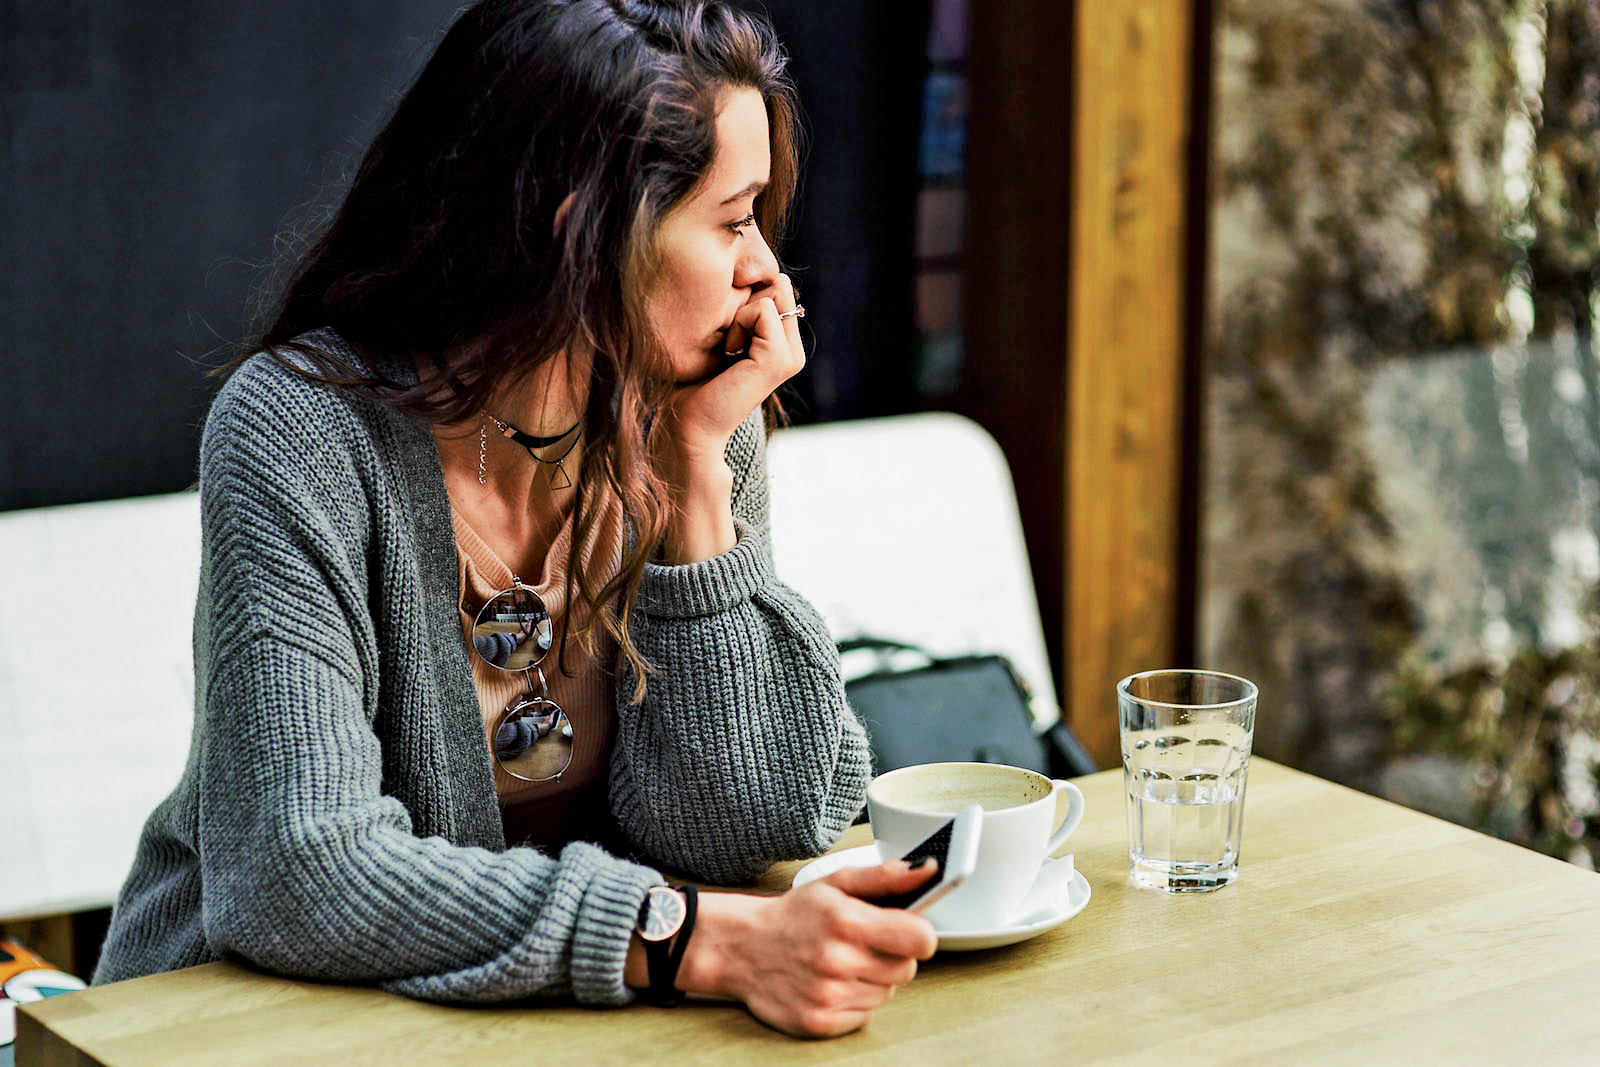 Woman sitting alone, having coffee and texting on her mobile phone